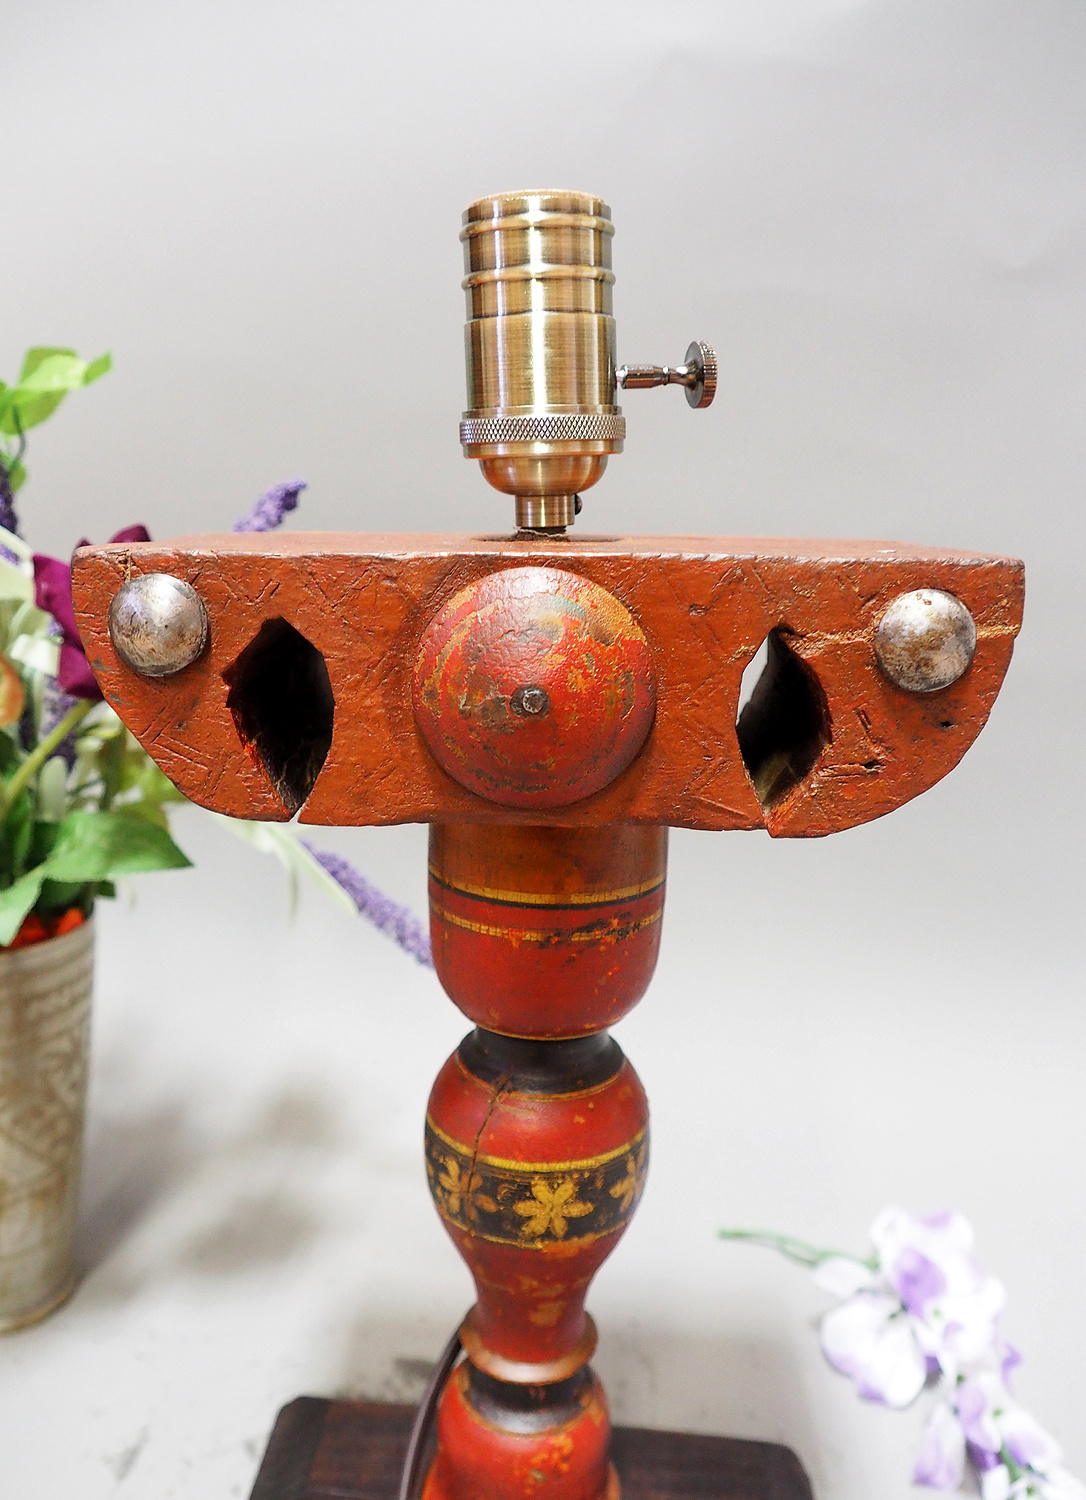 Antique handpainted stunning Vintage Lacquerware wooden Table Lamp with Vintage light fitting from Afghanistan / Pakistan No:21/7